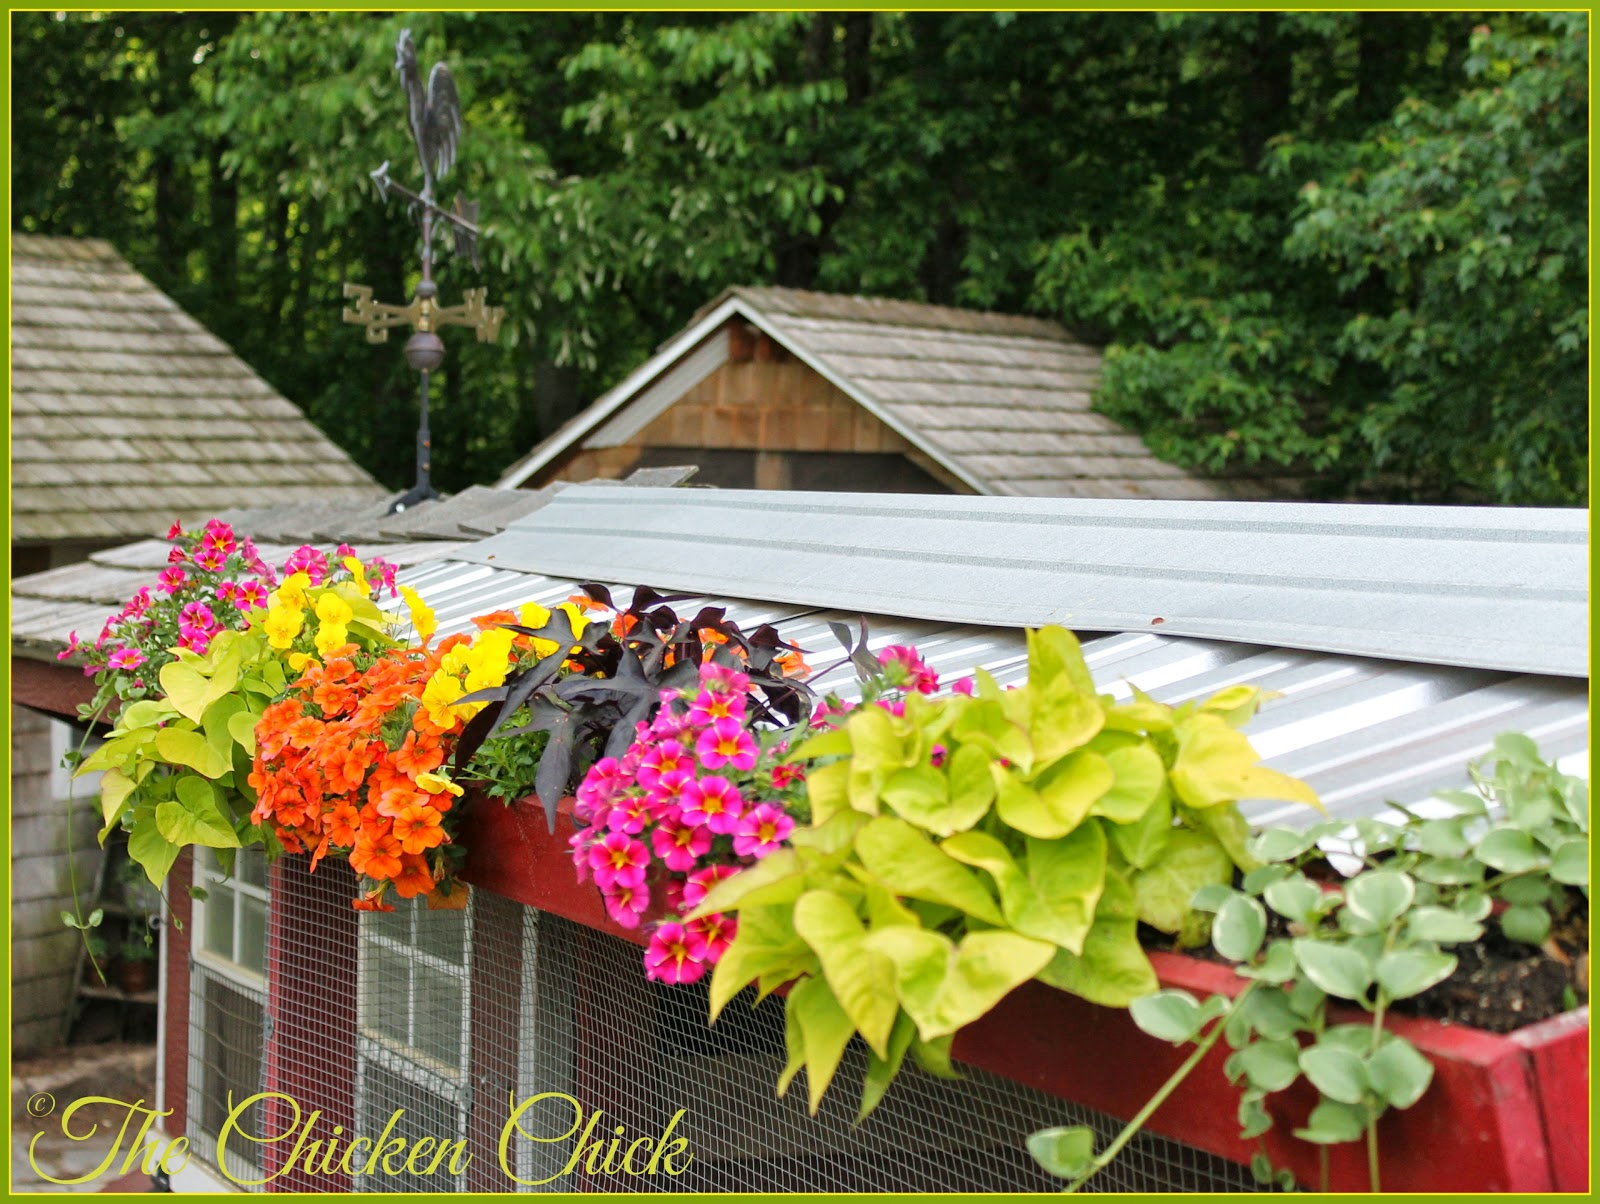 Chicken coop flower box.